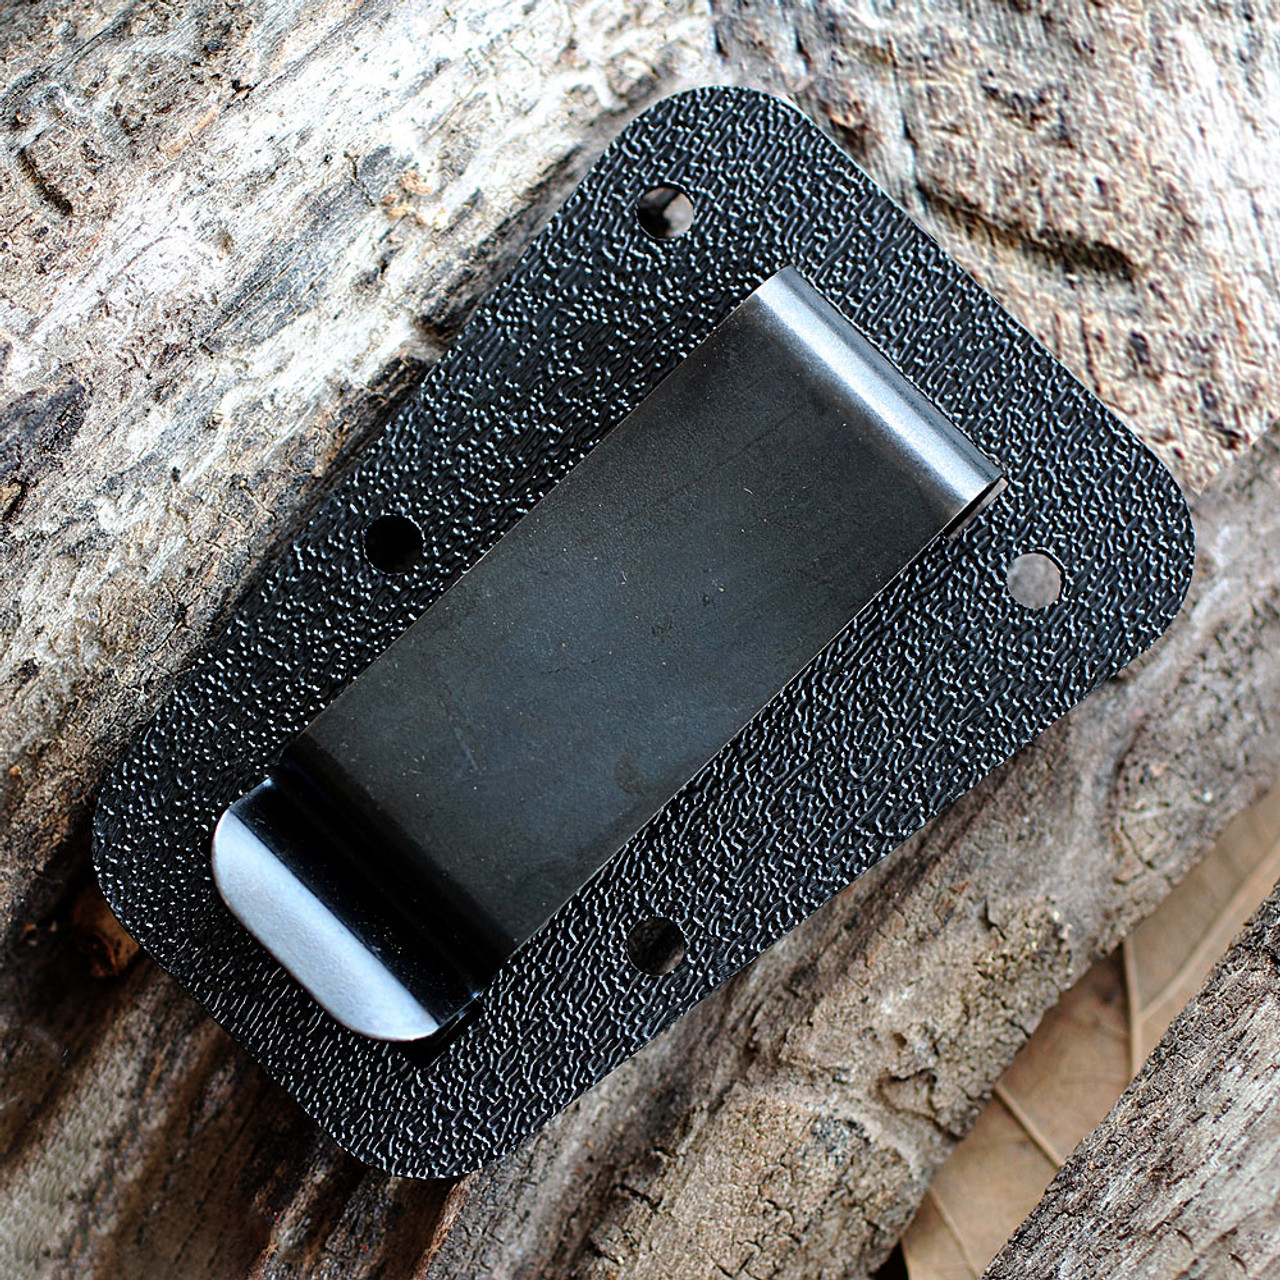 ESEE IZULA Knife, OD Green, Concealed Carry Knife, Clip Plate